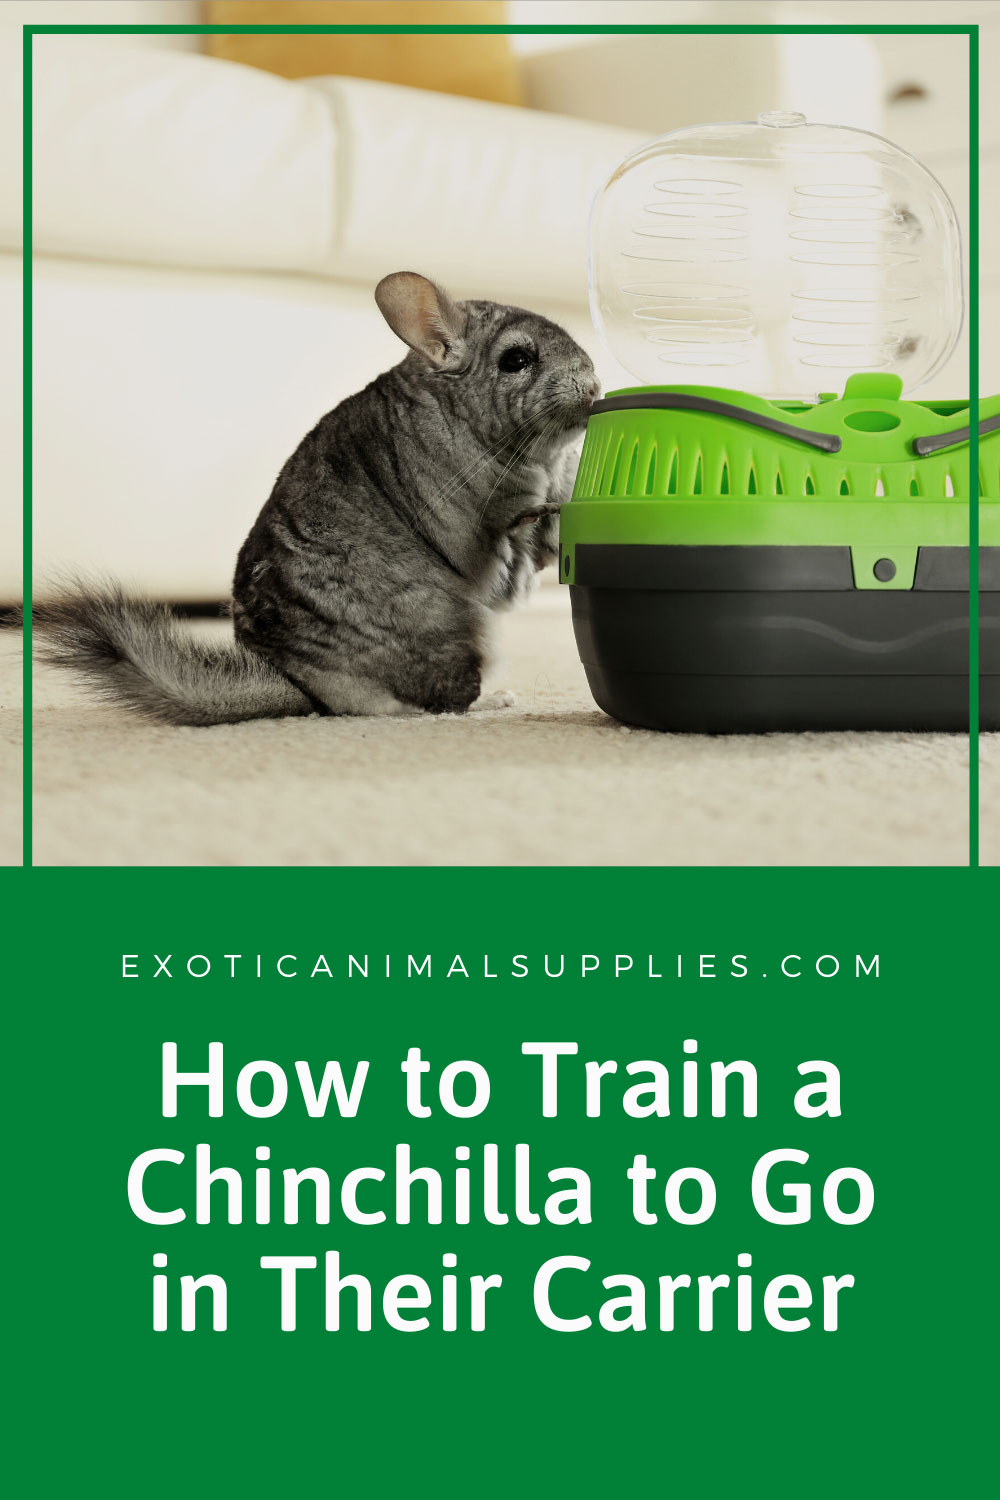 How to Train a Chinchilla to Go in a Carrier